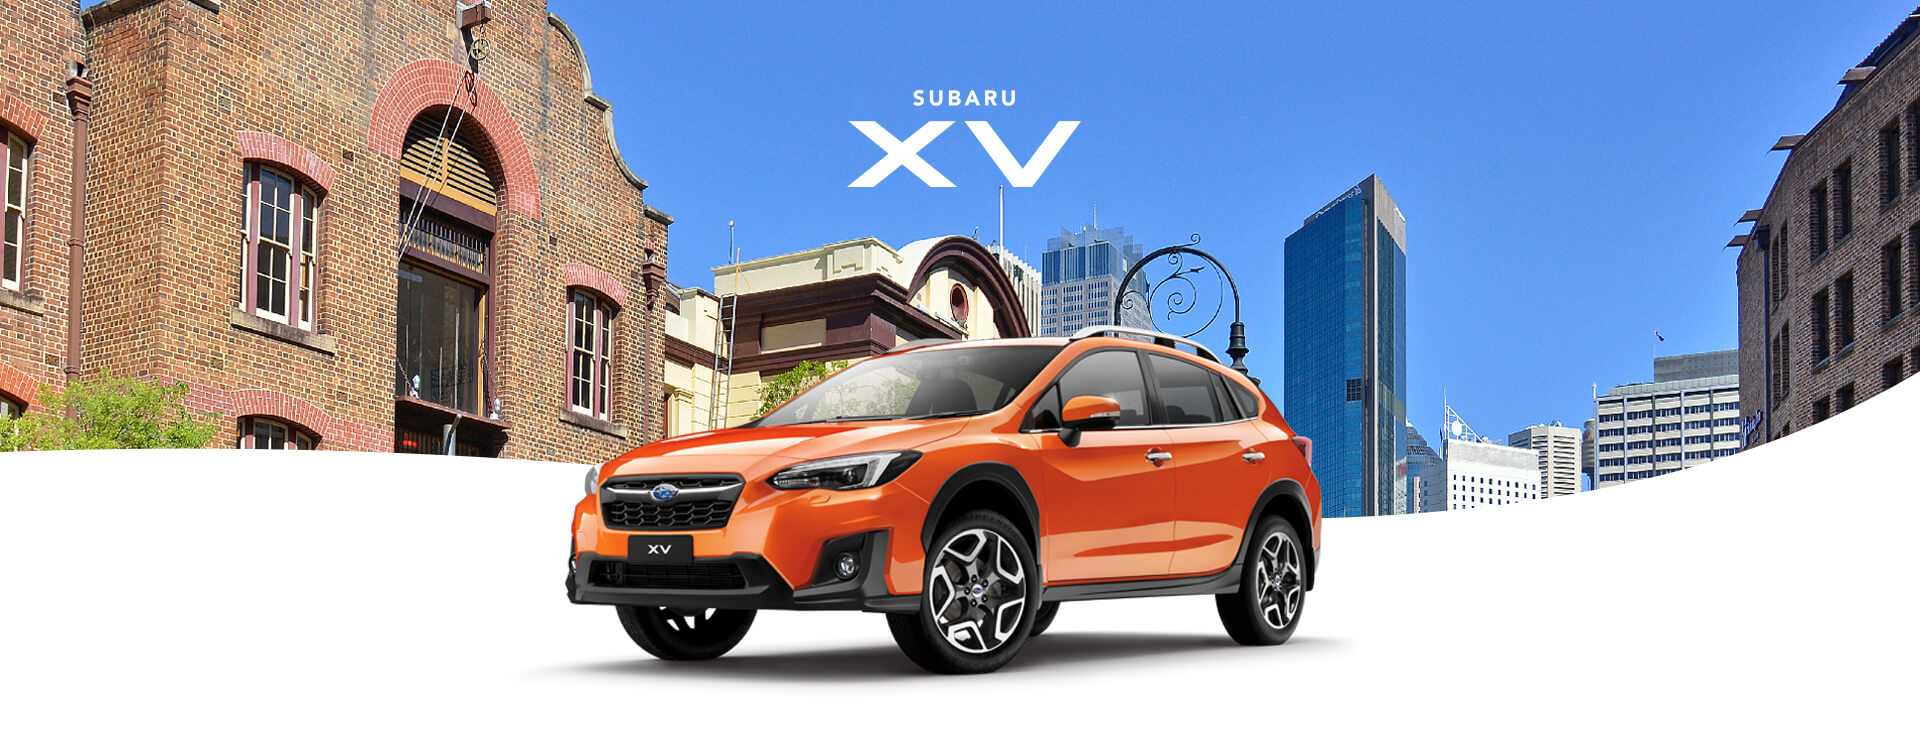 Subaru XV Accessory Packs | Subaru Australia